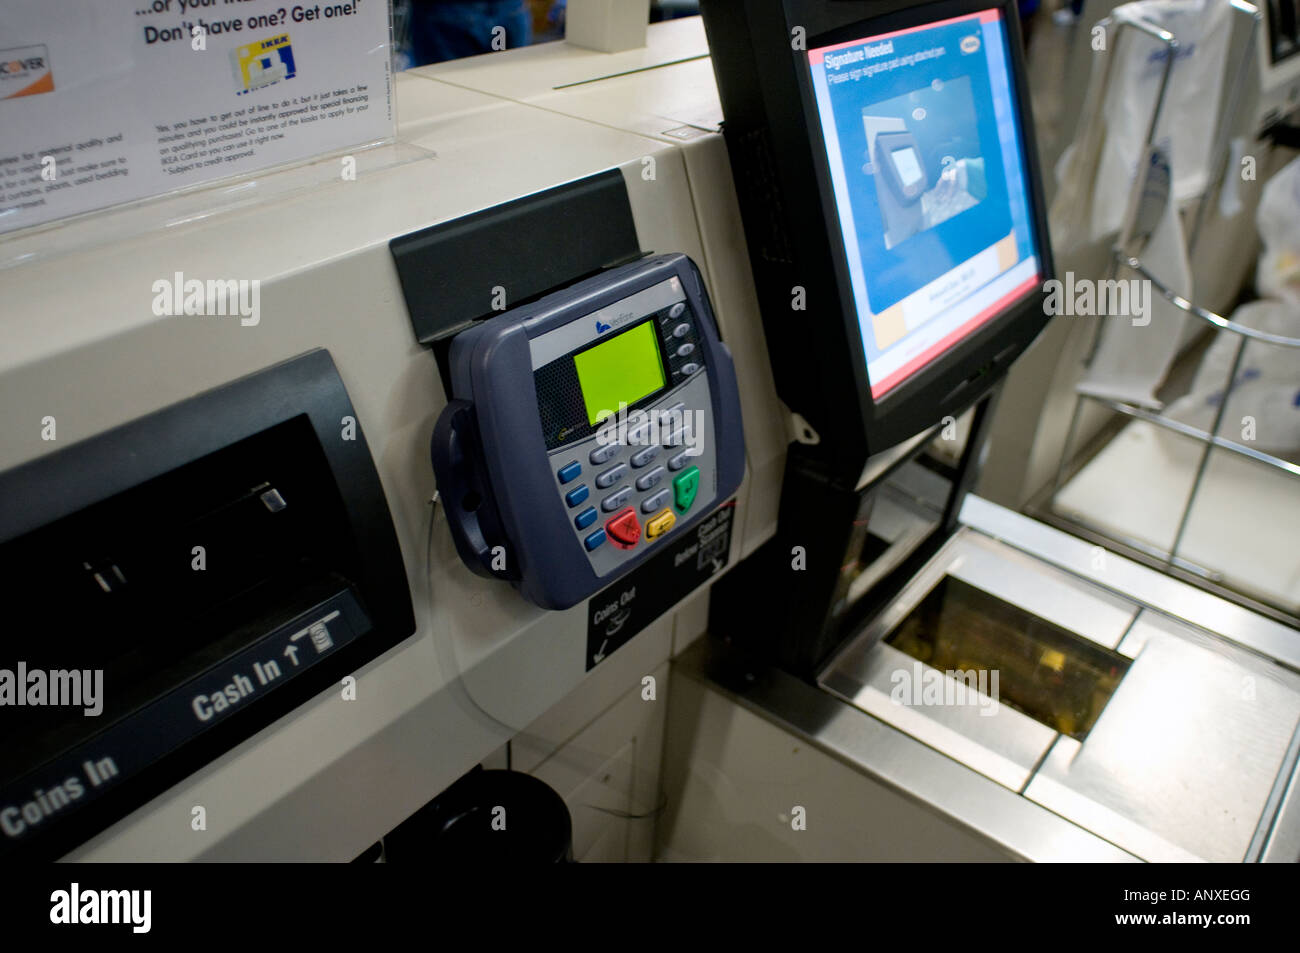 credit card point of sale terminal in the self checkout lane in ikea stock photo 15615903 alamy. Black Bedroom Furniture Sets. Home Design Ideas